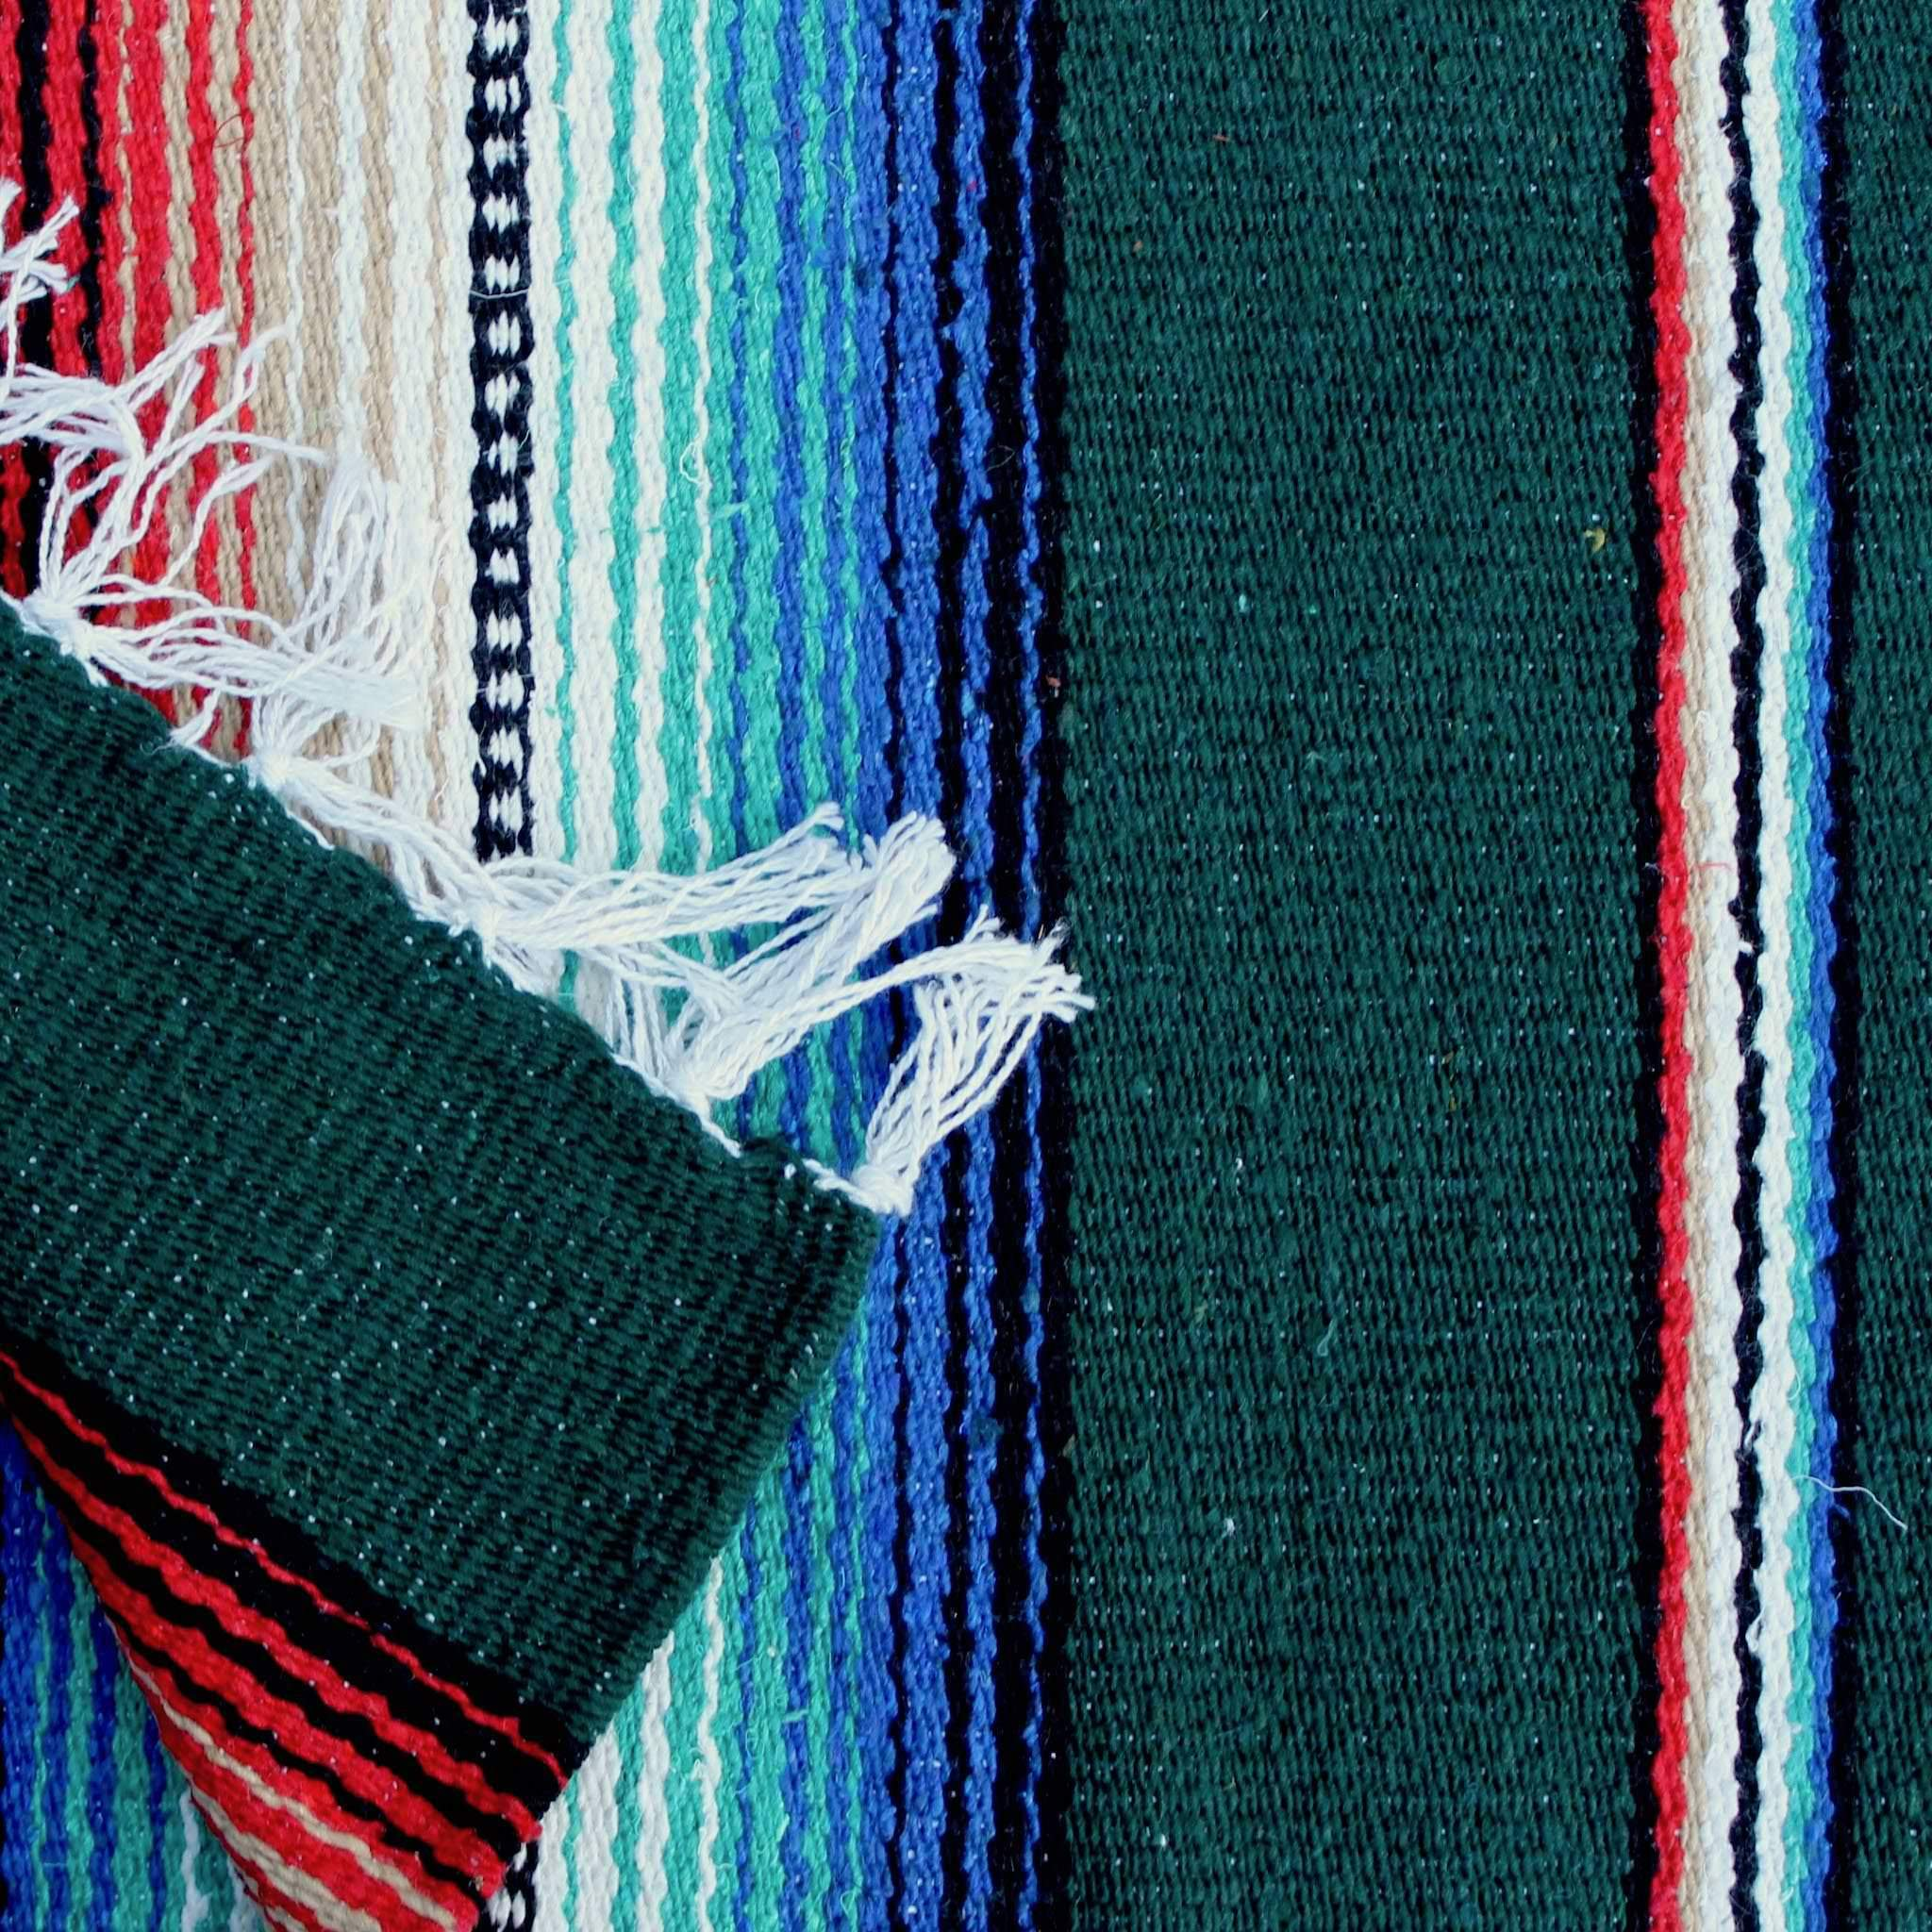 Close up of woven blanket showing wide hunter green stripe alternating with section of narrow stripes in blue, teal, white, black, tan and red, with blanket corner turned over showing white fringed edge.